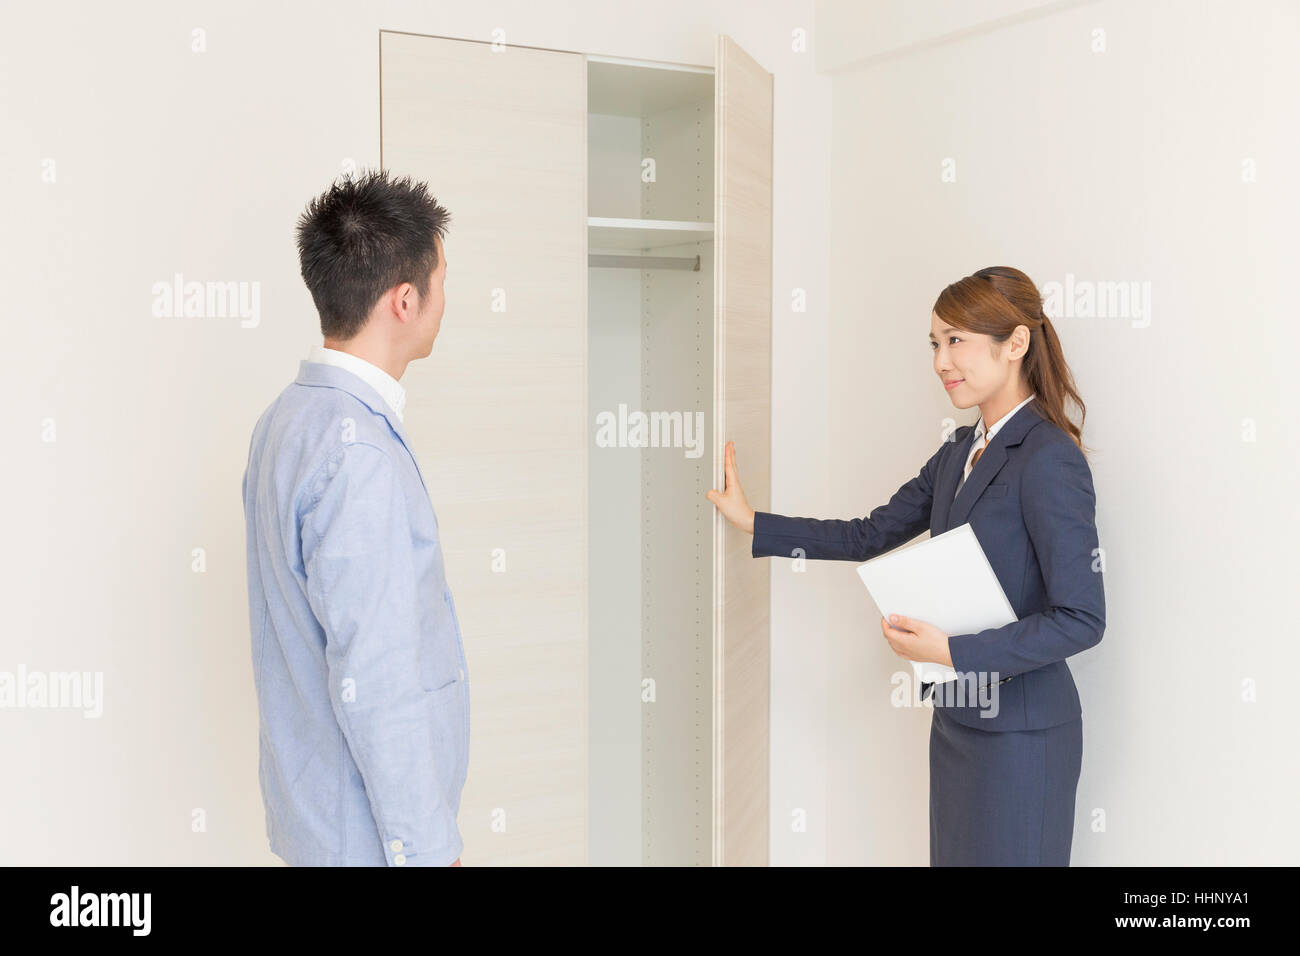 Real Estate Agent Showing Room to Buyer - Stock Image